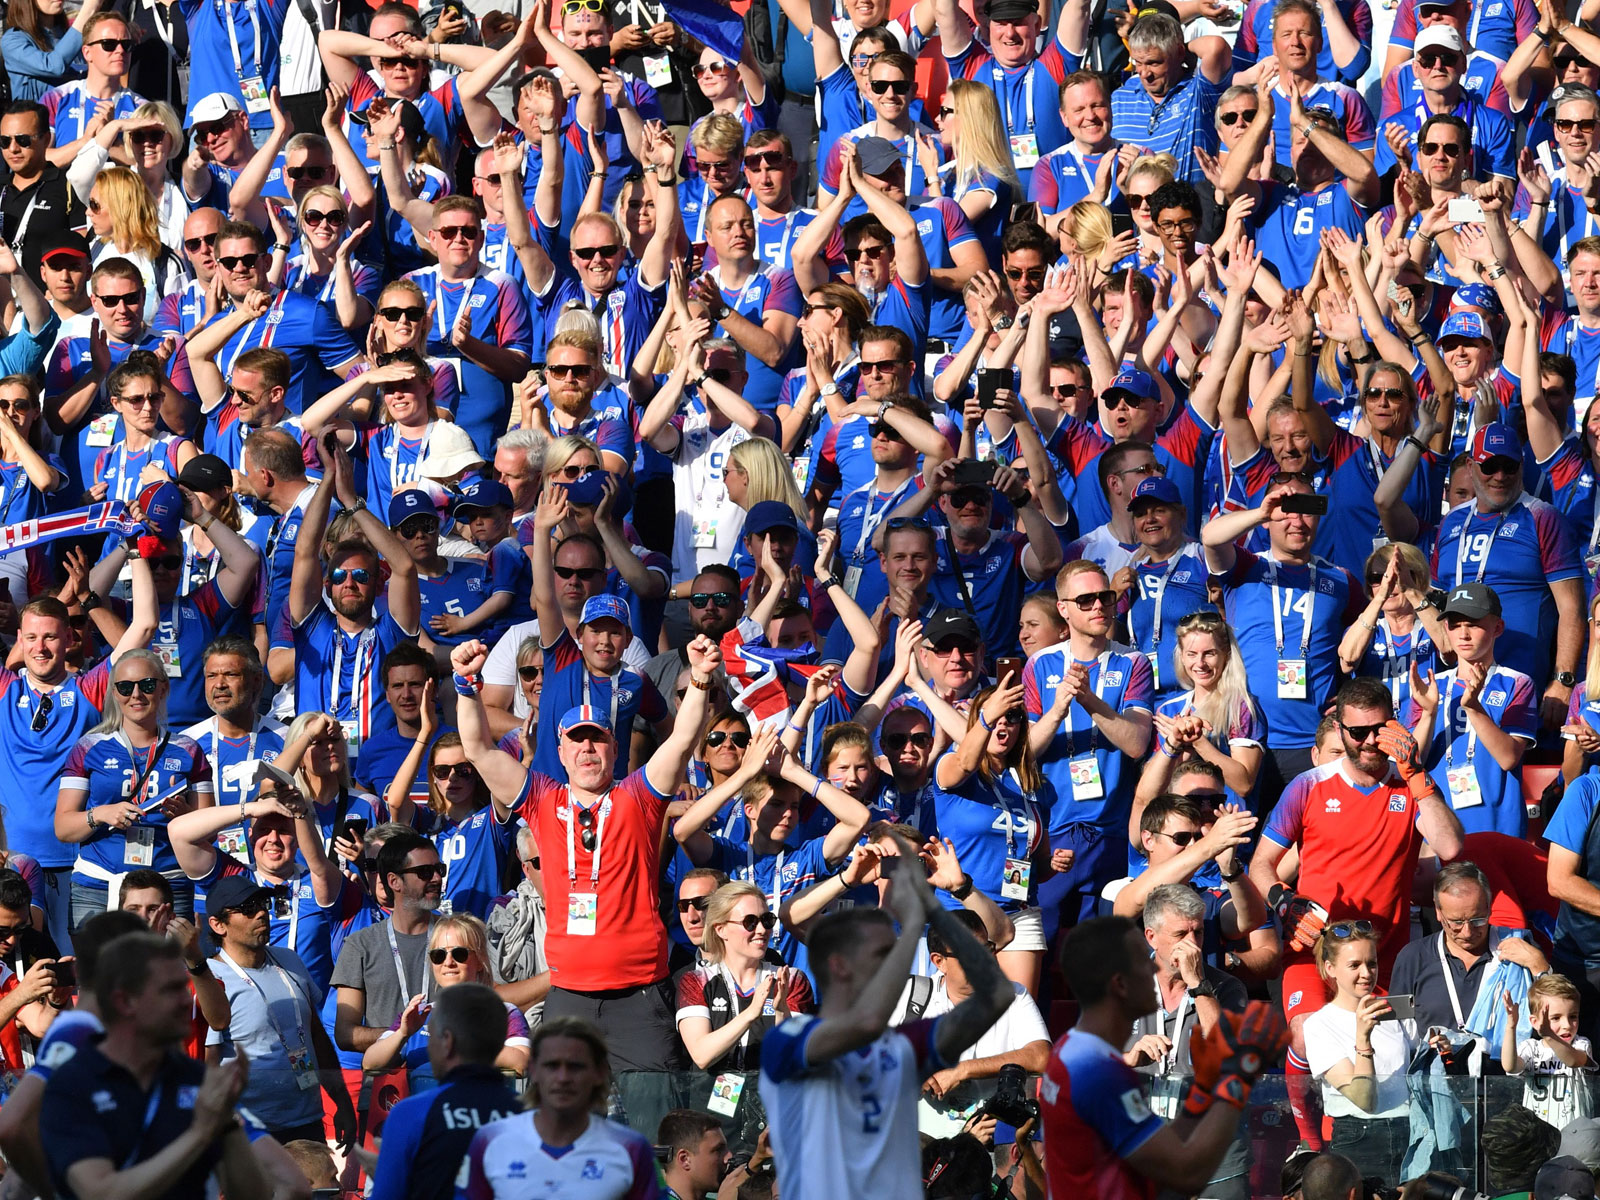 Iceland fans turn out for their World Cup opener vs. Argentina